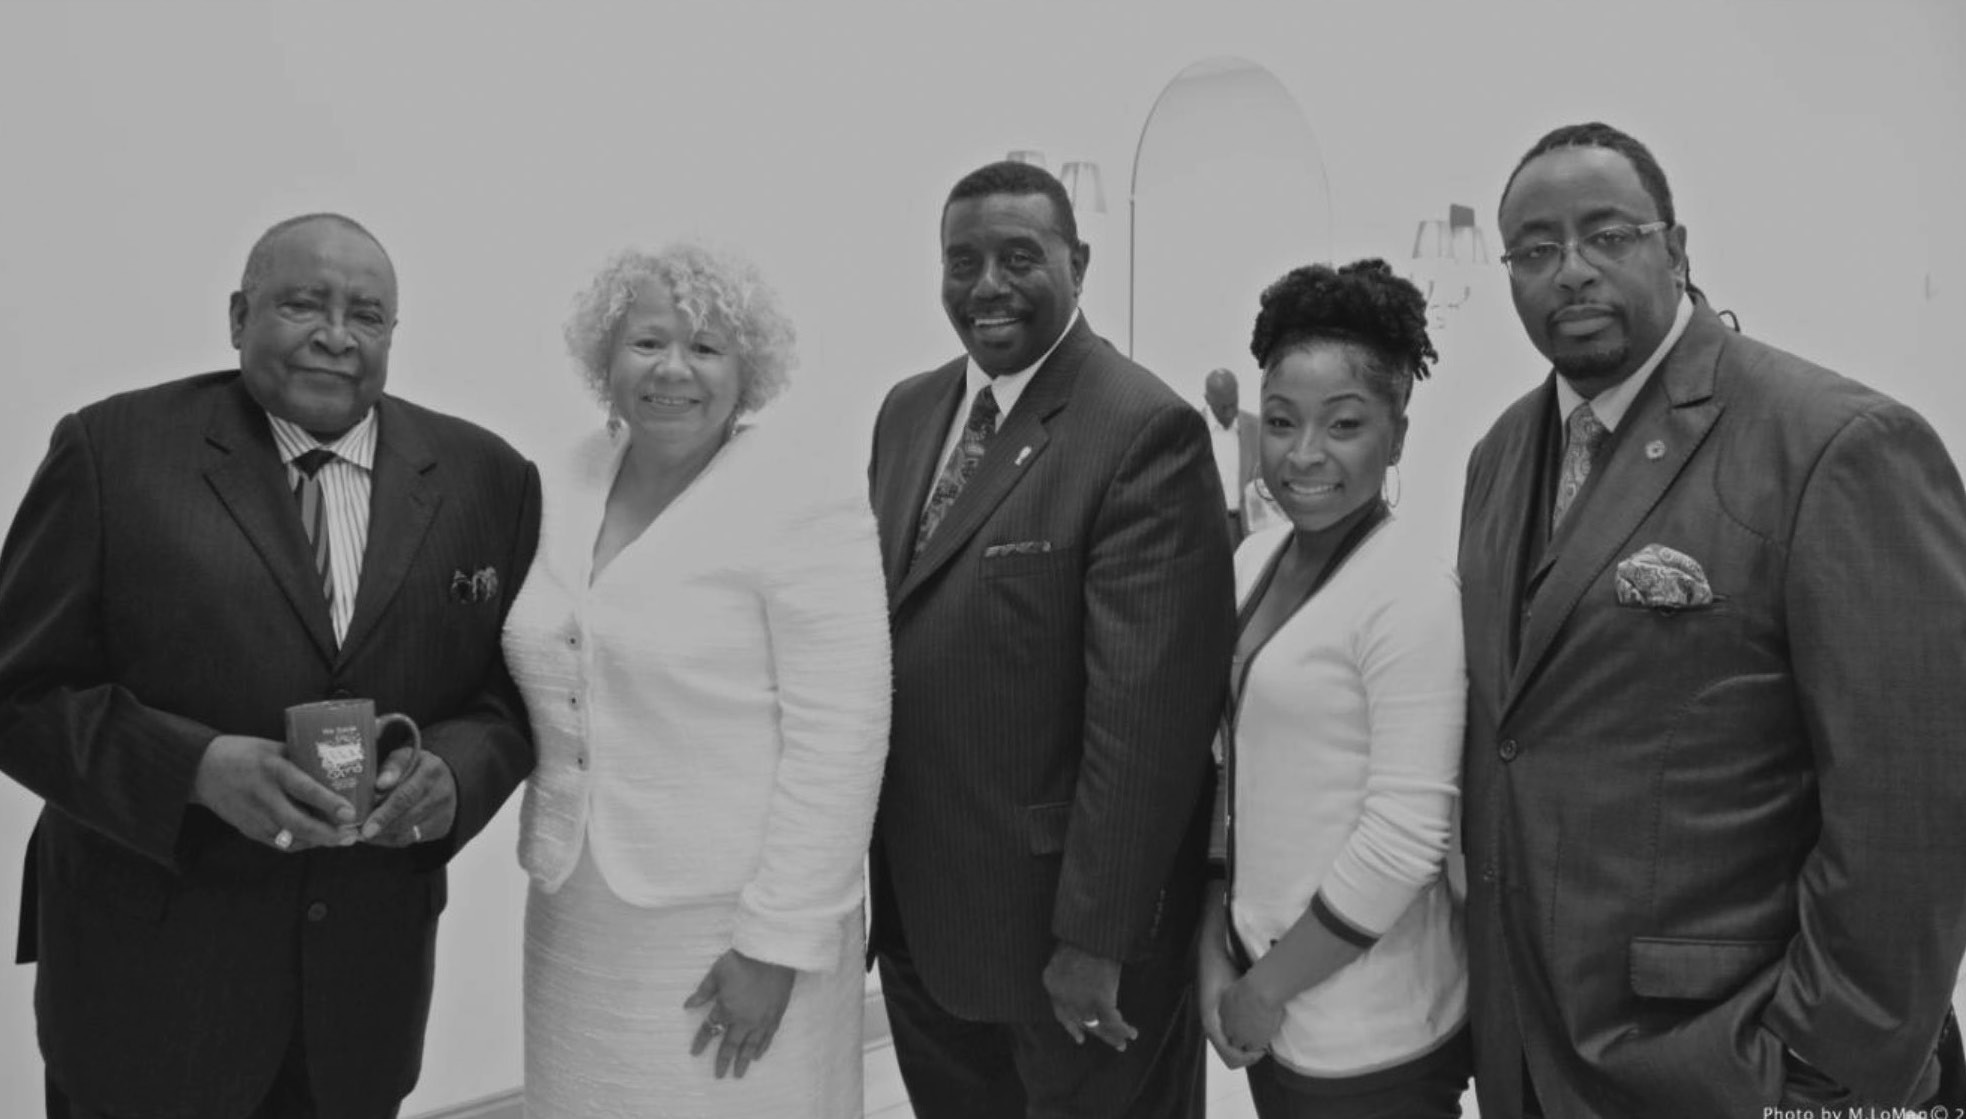 Left to right: Willie Morris, President ILA Local 1414 Retirees Association, Jacqueline Tomlin, Director Marketing and Promotions, Antioch Foot & Ankle Group, Willie Seymore, International Vice President ILA, Dr. Kristian Jeffress DPM Antioch Foot & Ankle Group and Tommie Stokes, President ILA Local 1414.